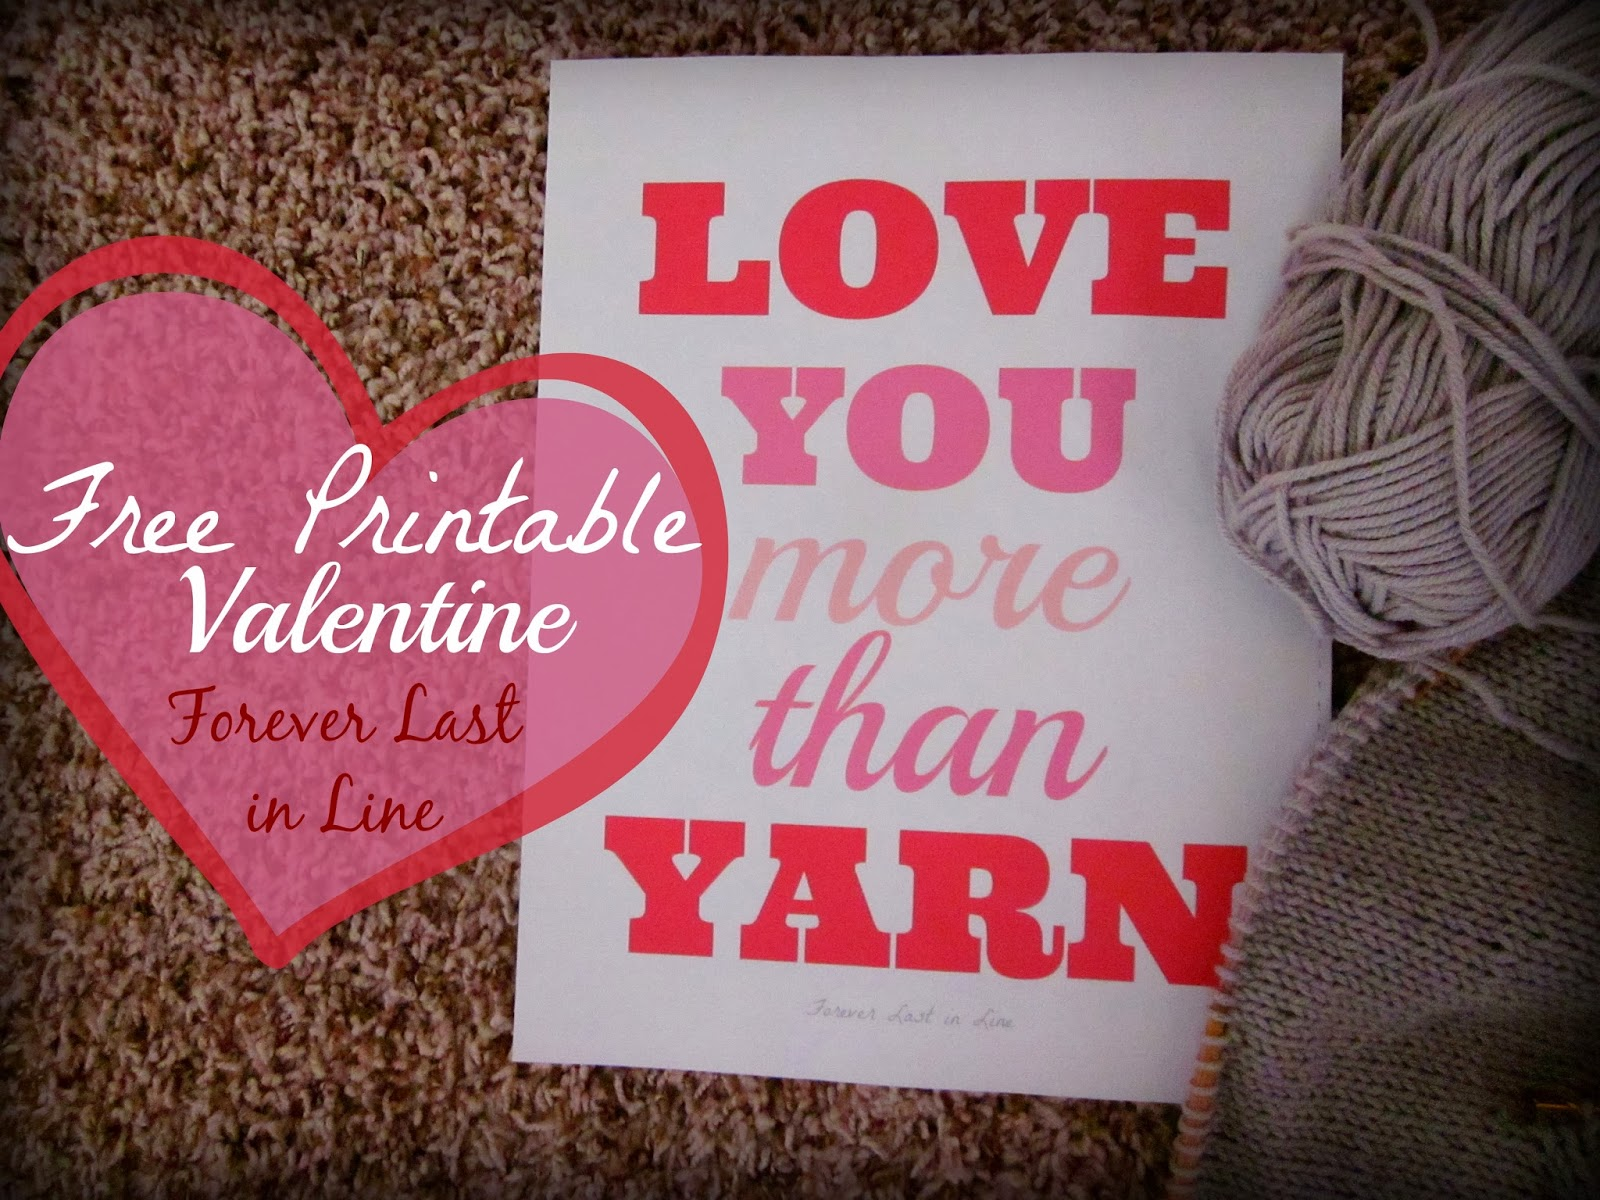 "Free Printable! Forever Last in Line Blog Printable ""Love You More Than Yarn"" Valentine Card"